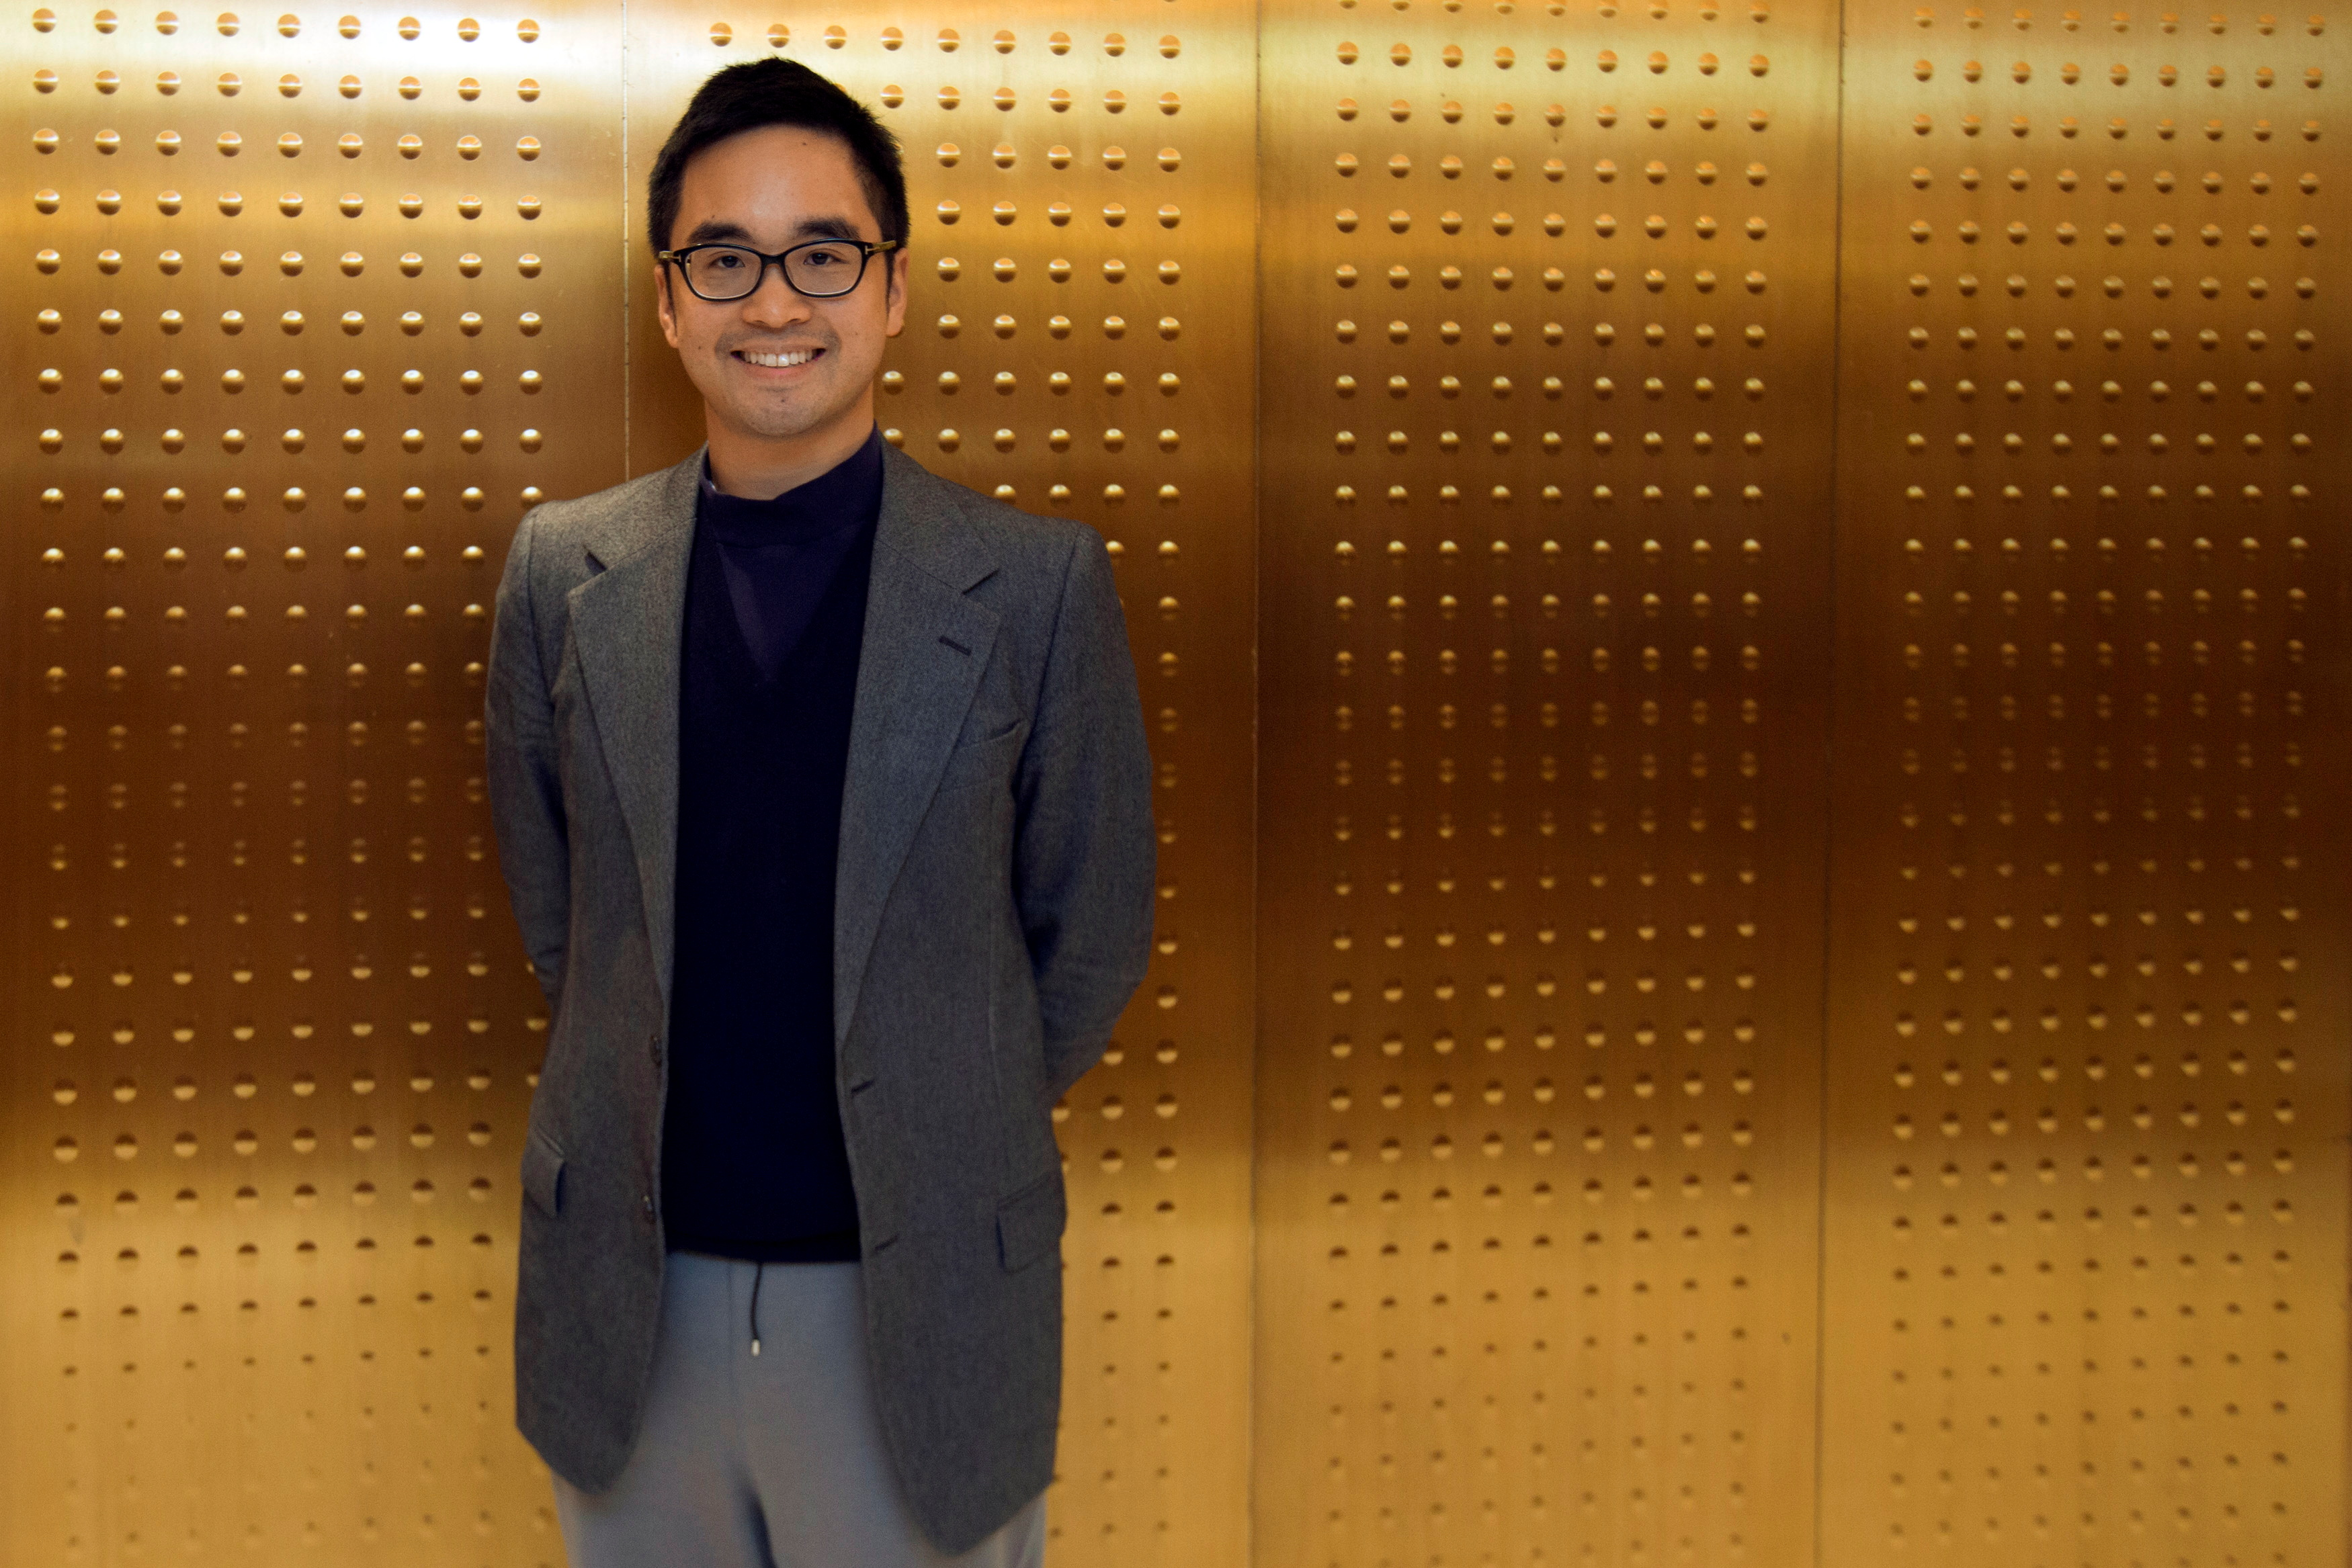 Hong Kong billionaire Adrian Cheng, the 33-year-old grandson of Hong Kong tycoon Cheng Yu-teng, poses for a photograph before an interview with Reuters at his office in Hong Kong April 11, 2013. Cheng is one of a new generation of business leaders in Asia who are taking over the corporate reins from their ageing rags-to-riches forebears. Picture taken April 11, 2013. To match Interview HONGKONG-CHOWTAIFOOK/CHENG       REUTERS/Tyrone Siu (CHINA - Tags: BUSINESS SOCIETY WEALTH)/File Photo